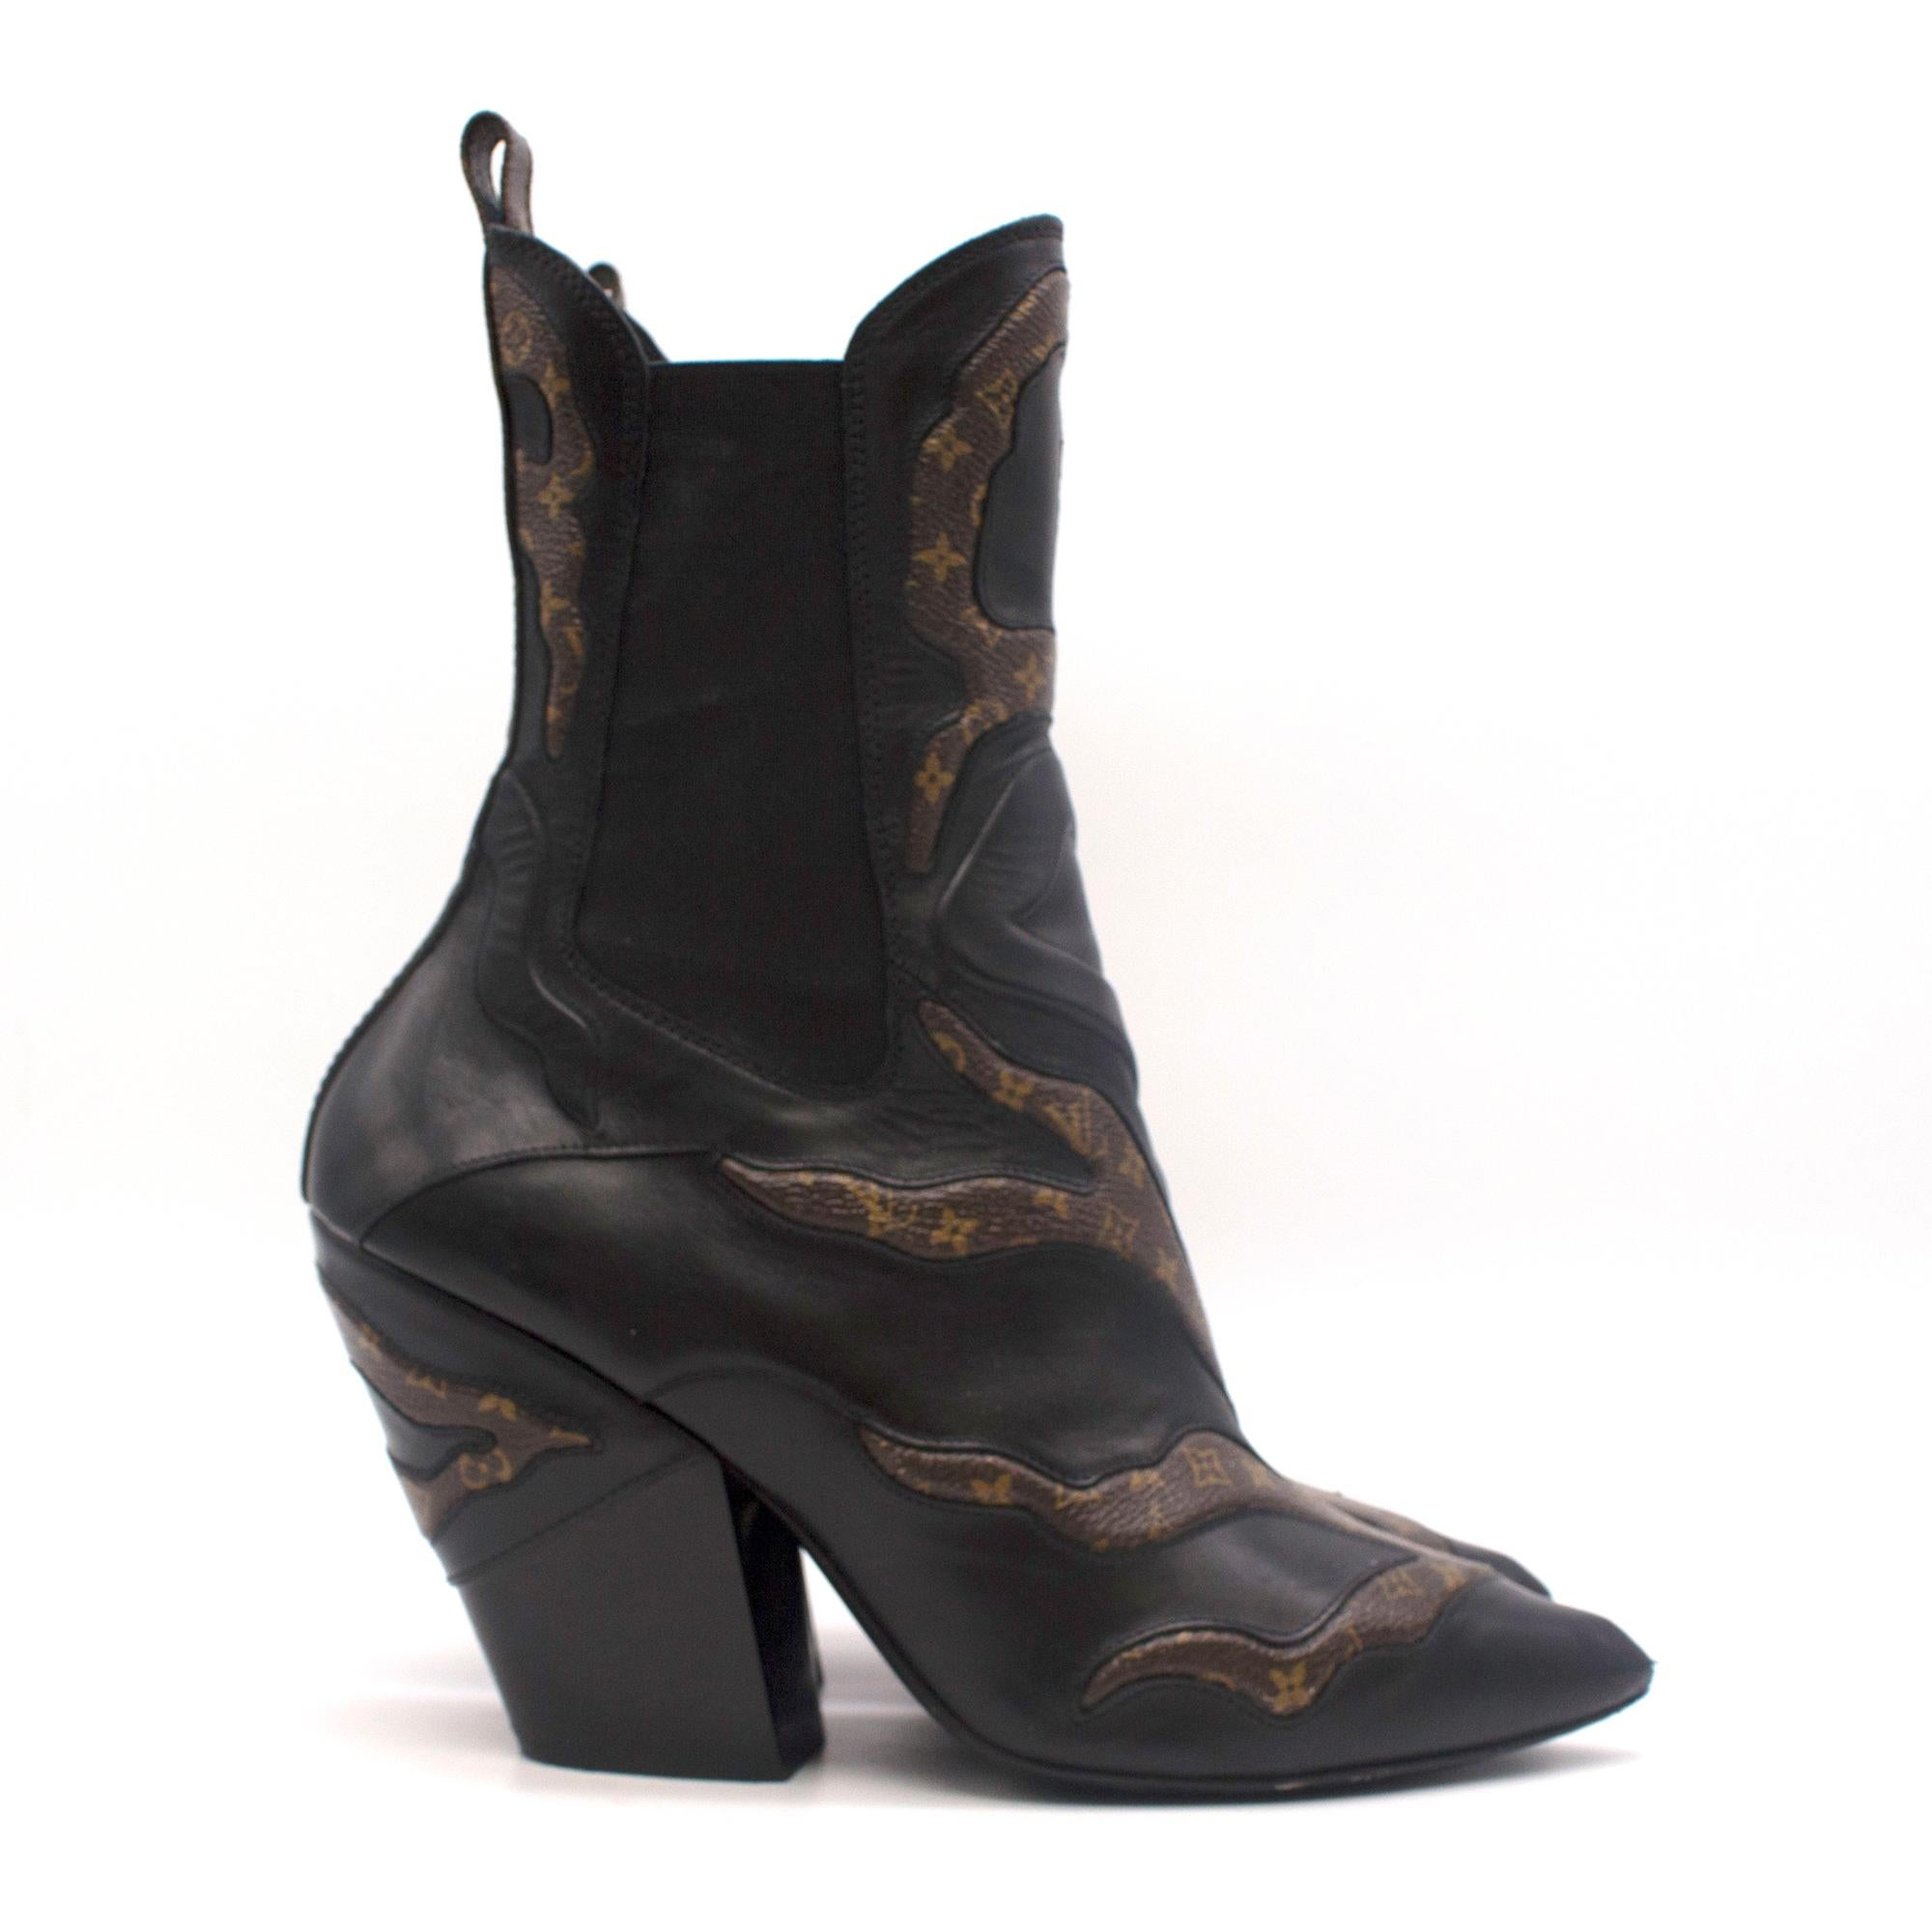 3bd722074e48 Louis Vuitton Fireball Leather Ankle Boots - Current Season 38.5 For Sale  at 1stdibs